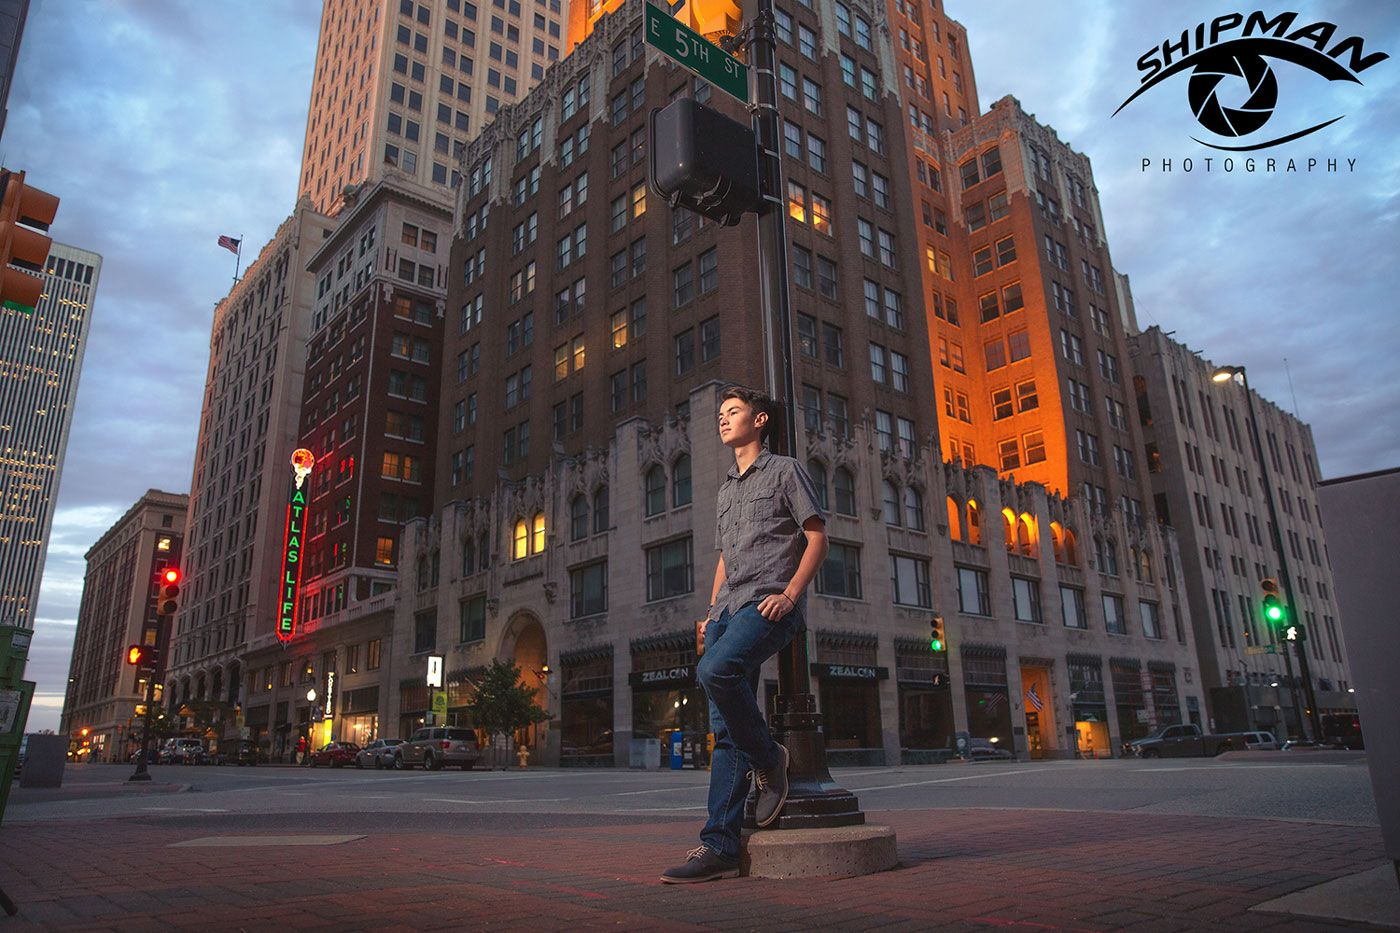 a young man's senior portrait on a street corner in downtown Tulsa